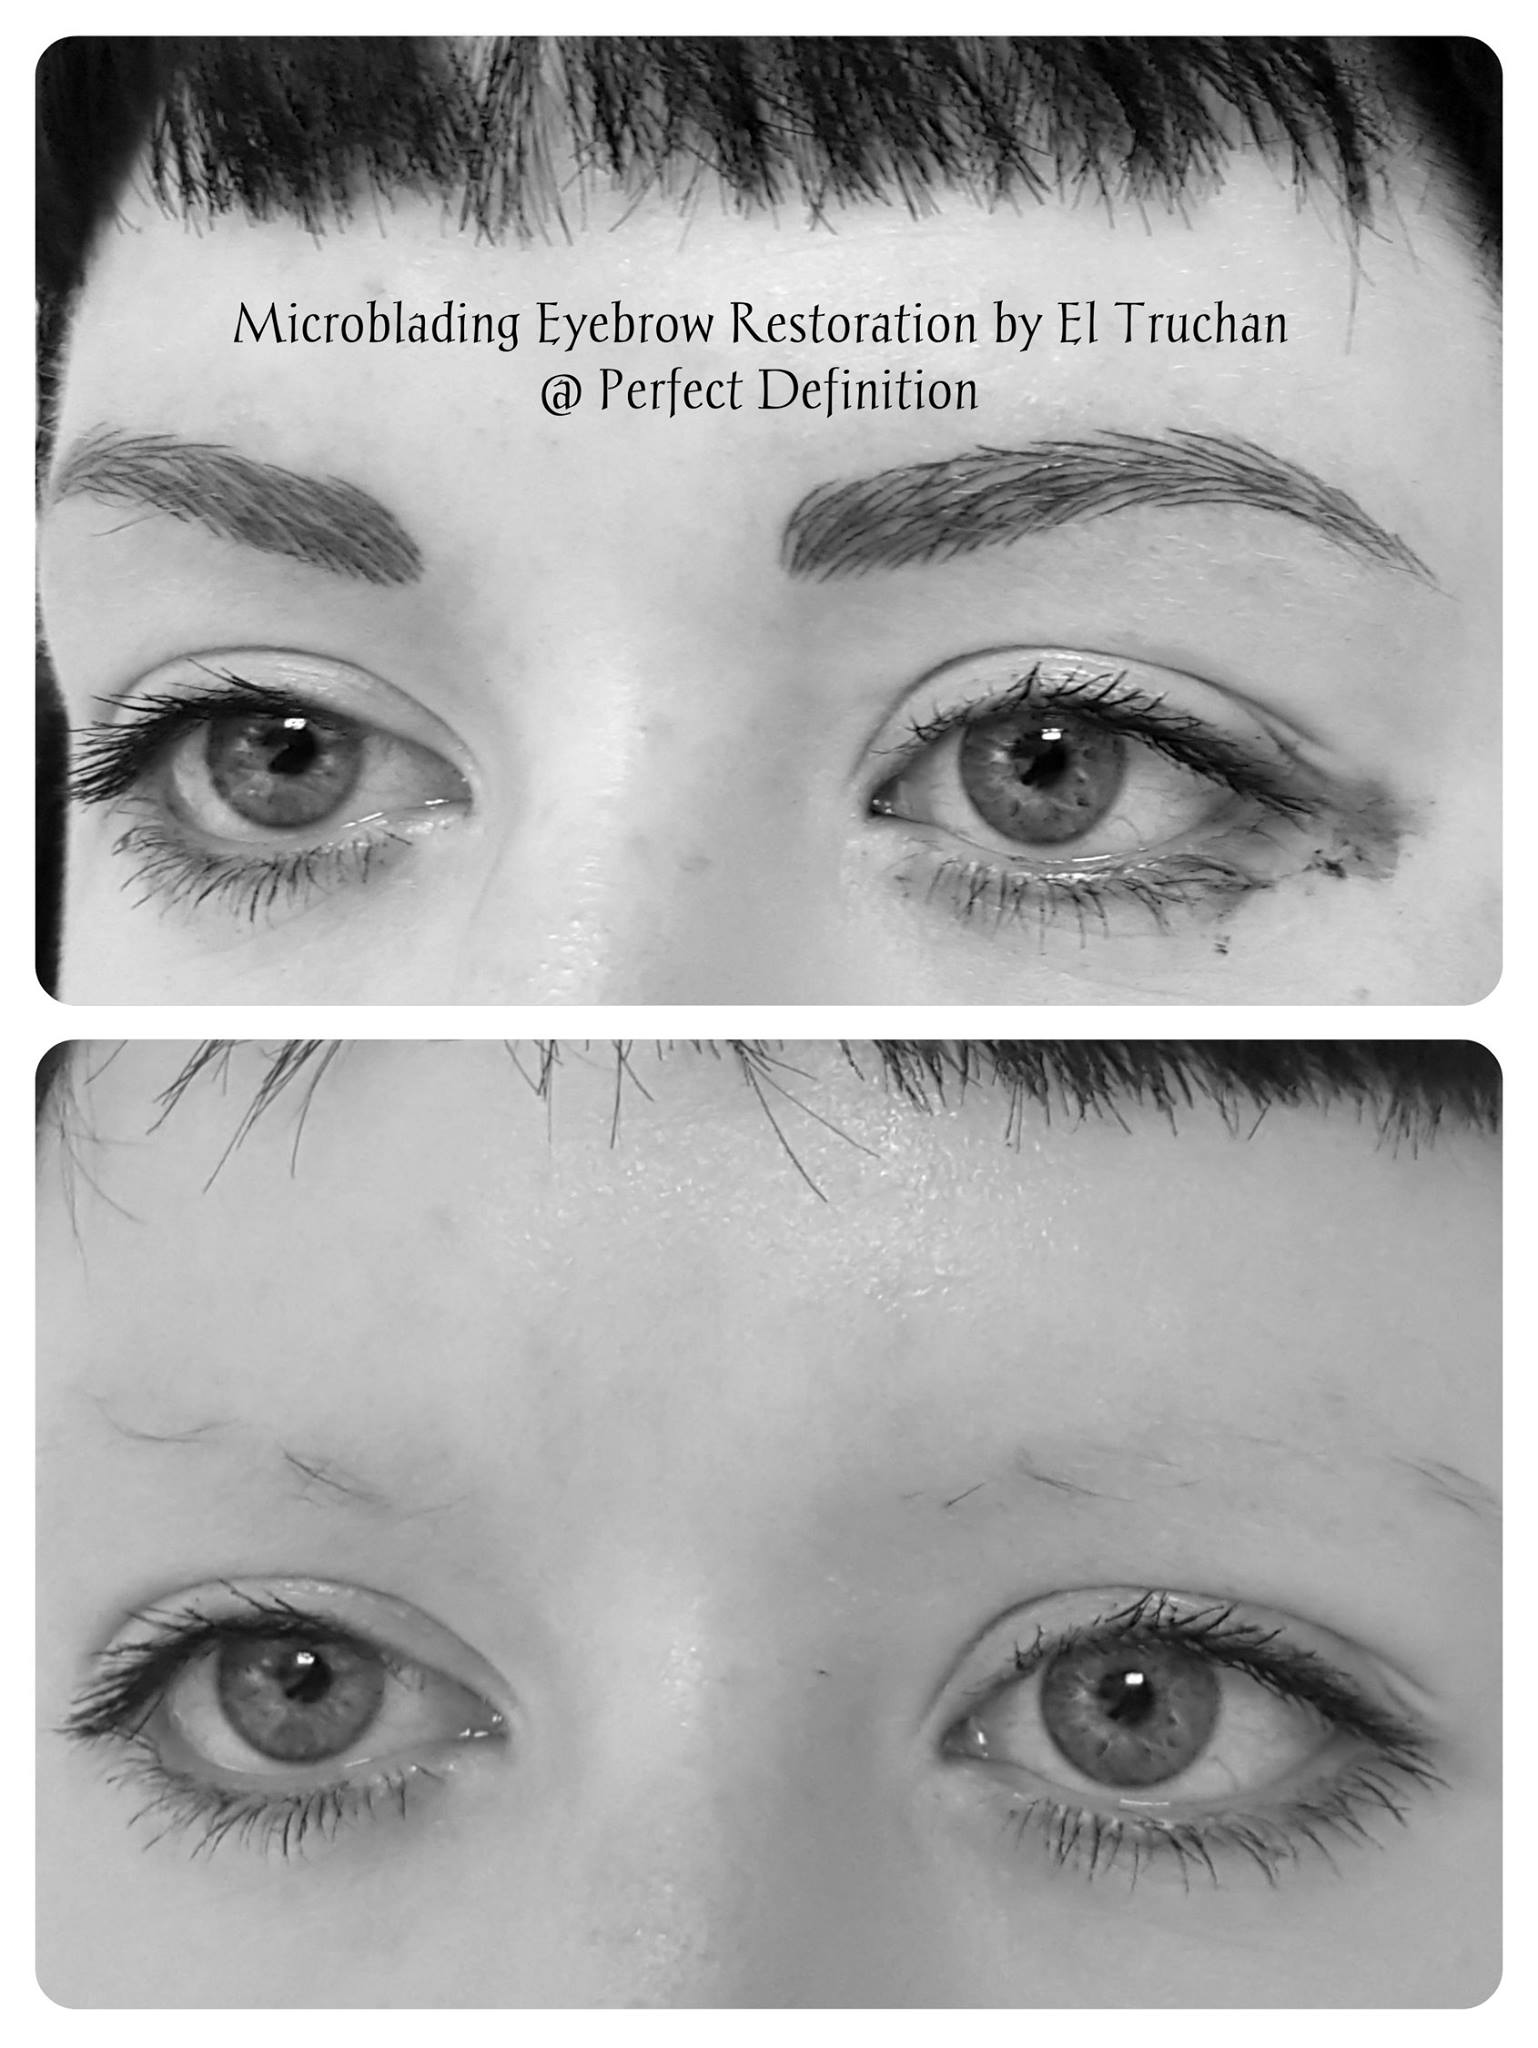 Eyebrow Reconstruction by El Truchan